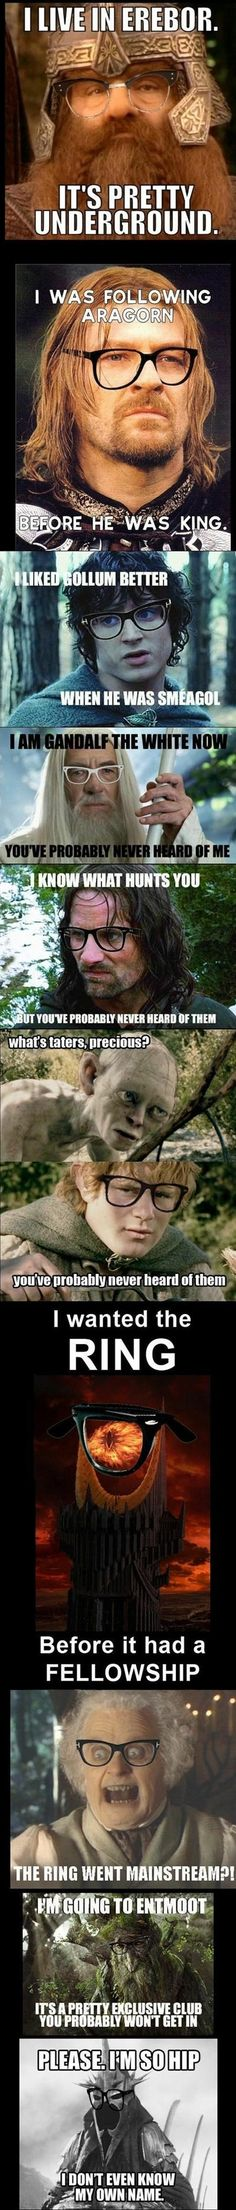 Hipster LOTR characters